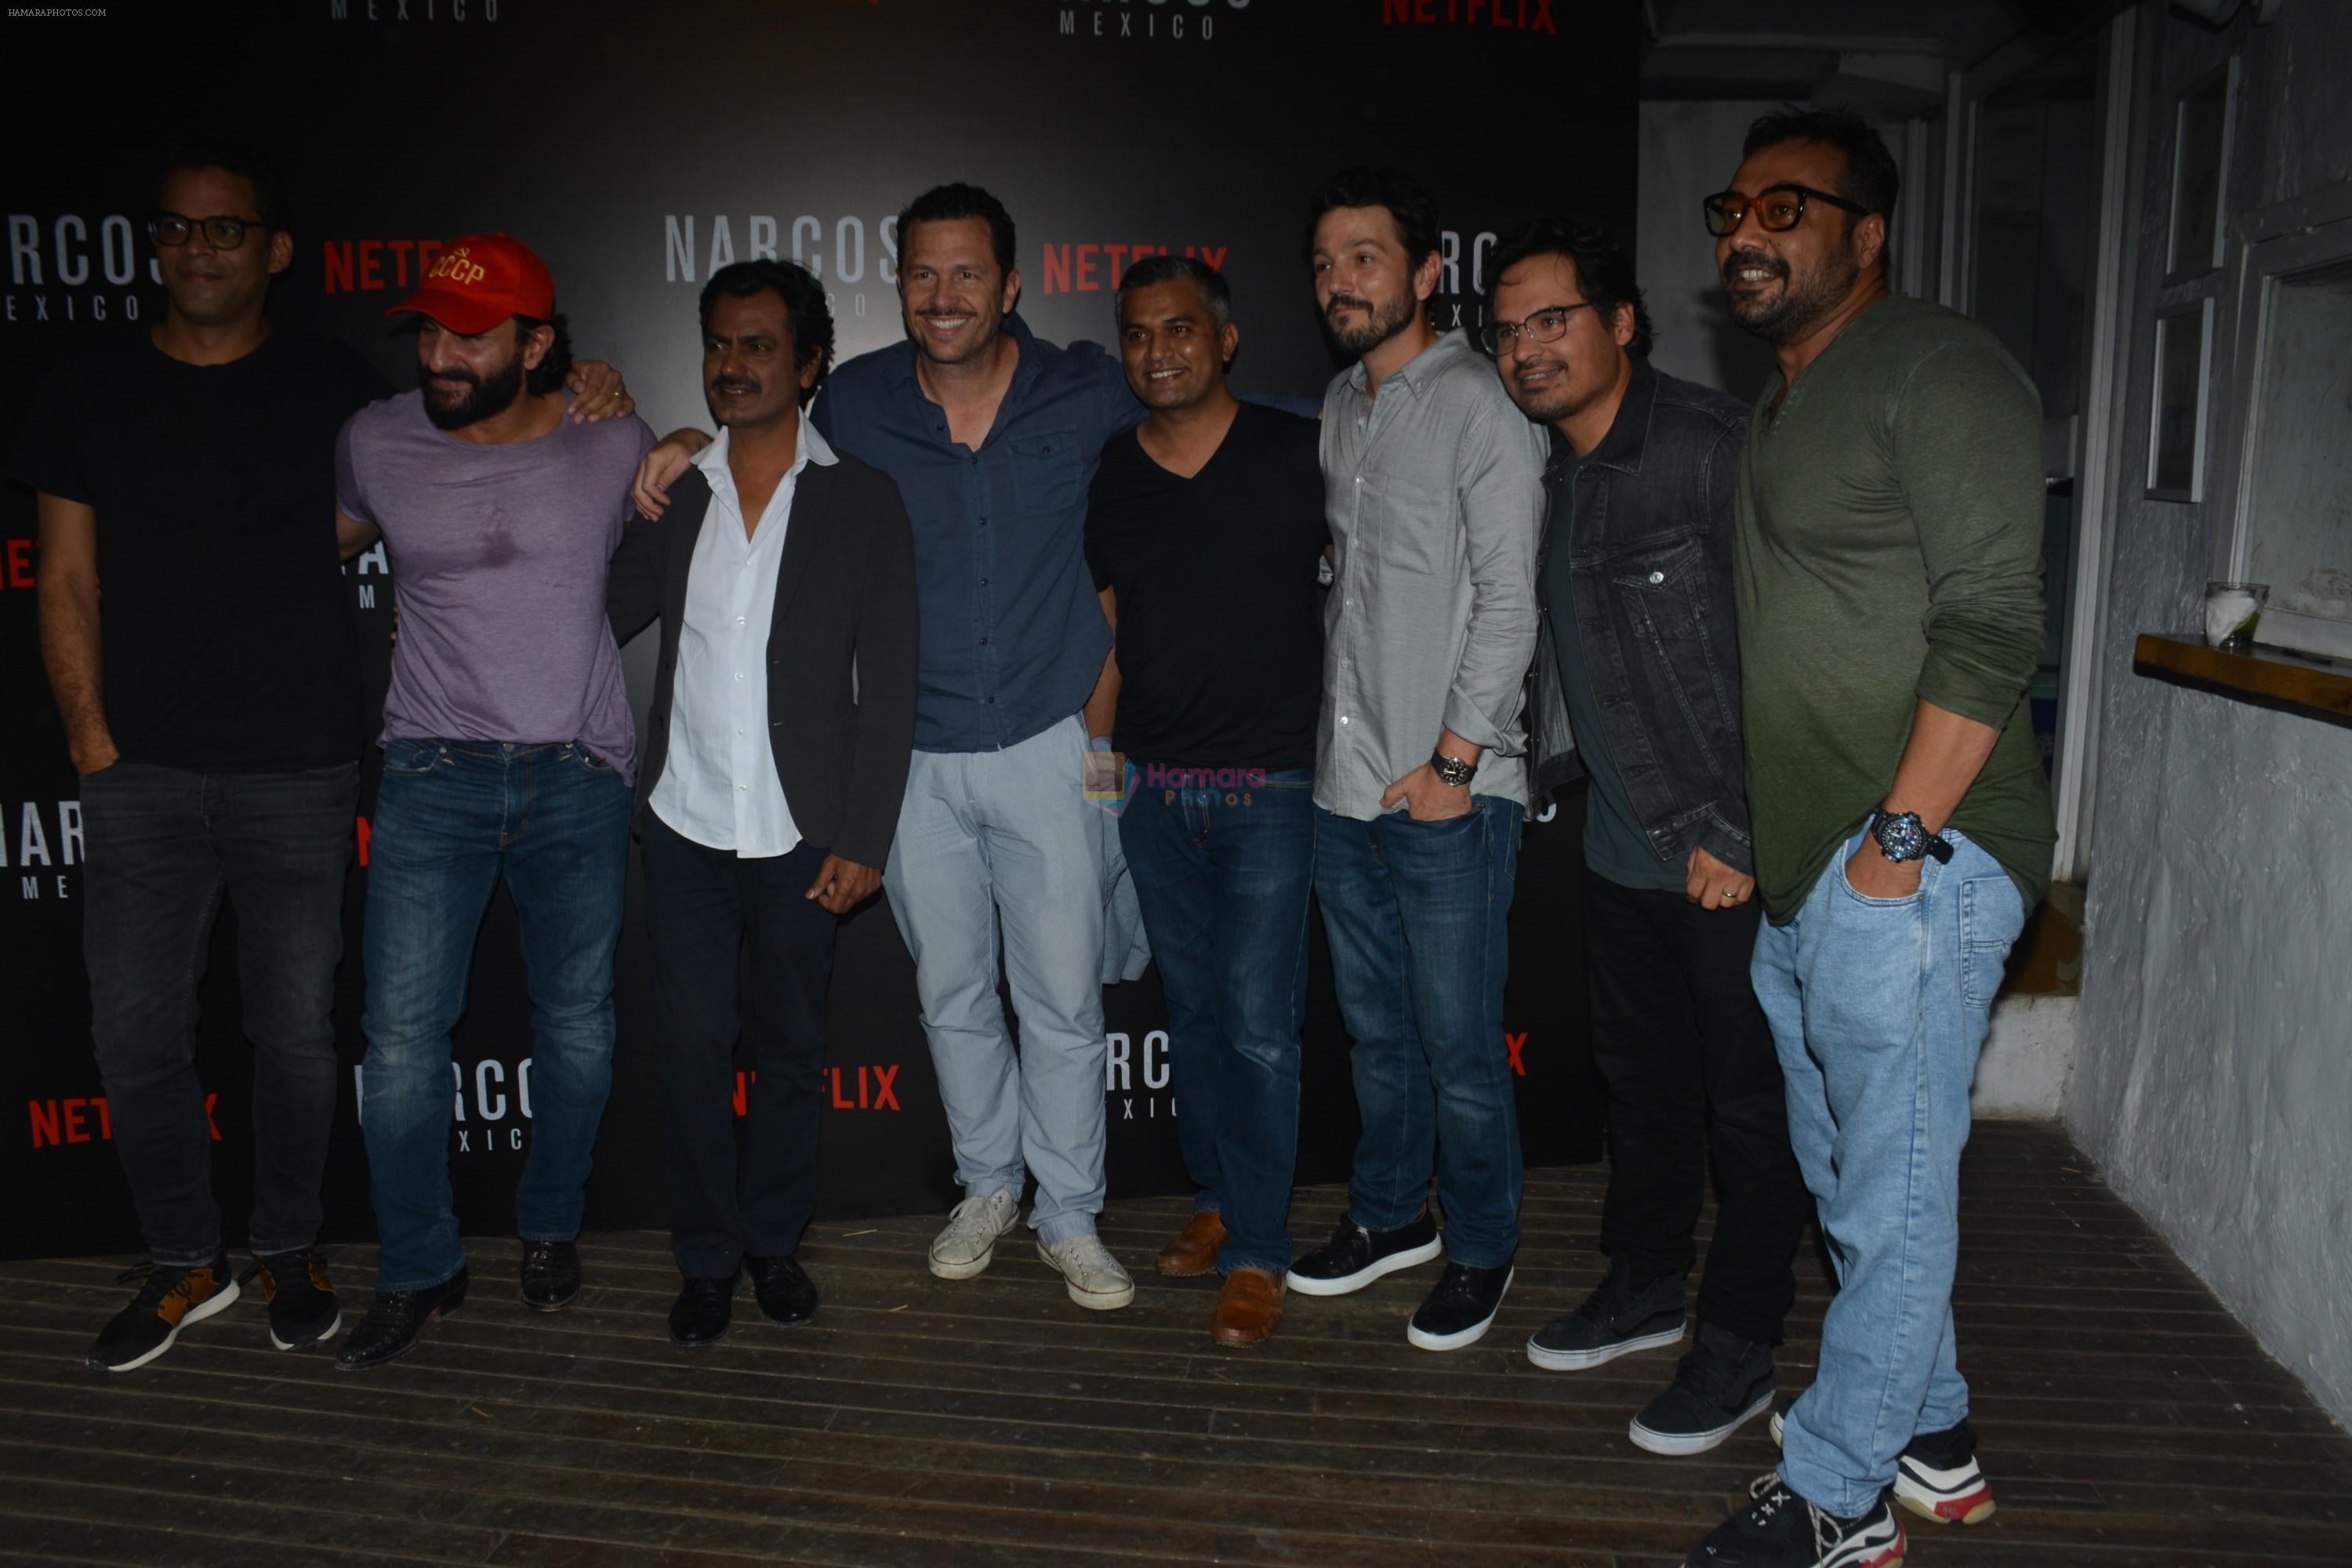 Saif Ali Khan, Anurag Kashyap At Meet and Greet With Team Of Webseries Narcos Mexico in Mumbai on 11th Nov 2018